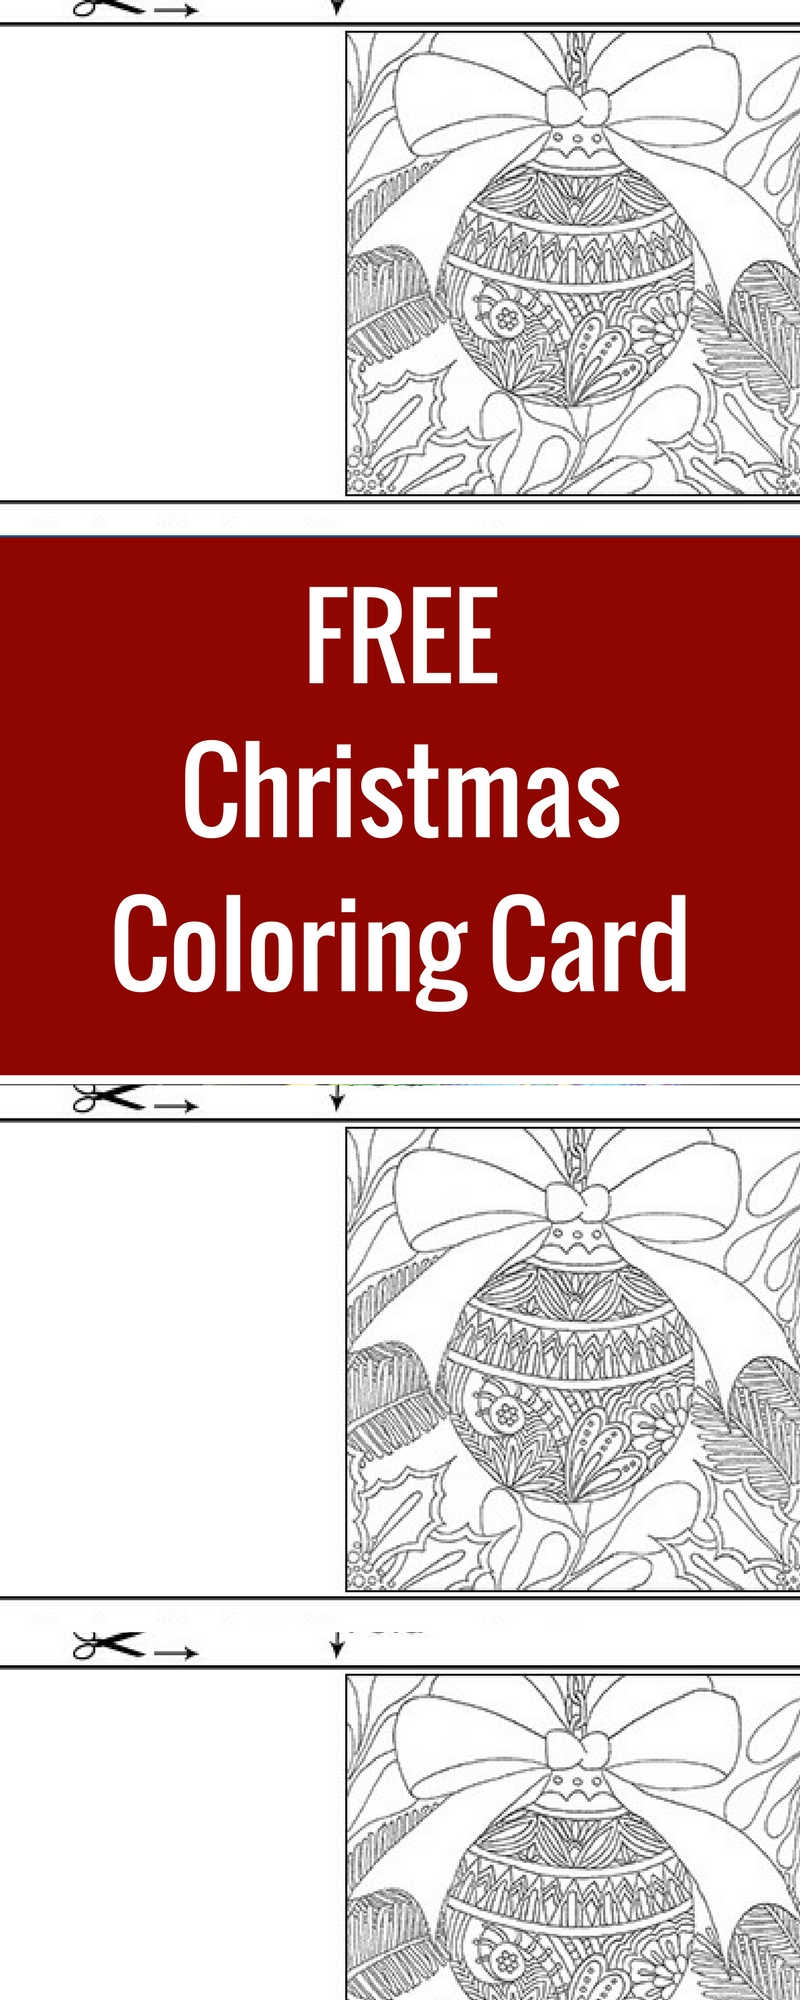 Free Coloring Christmas Card For You To Color With Tombow